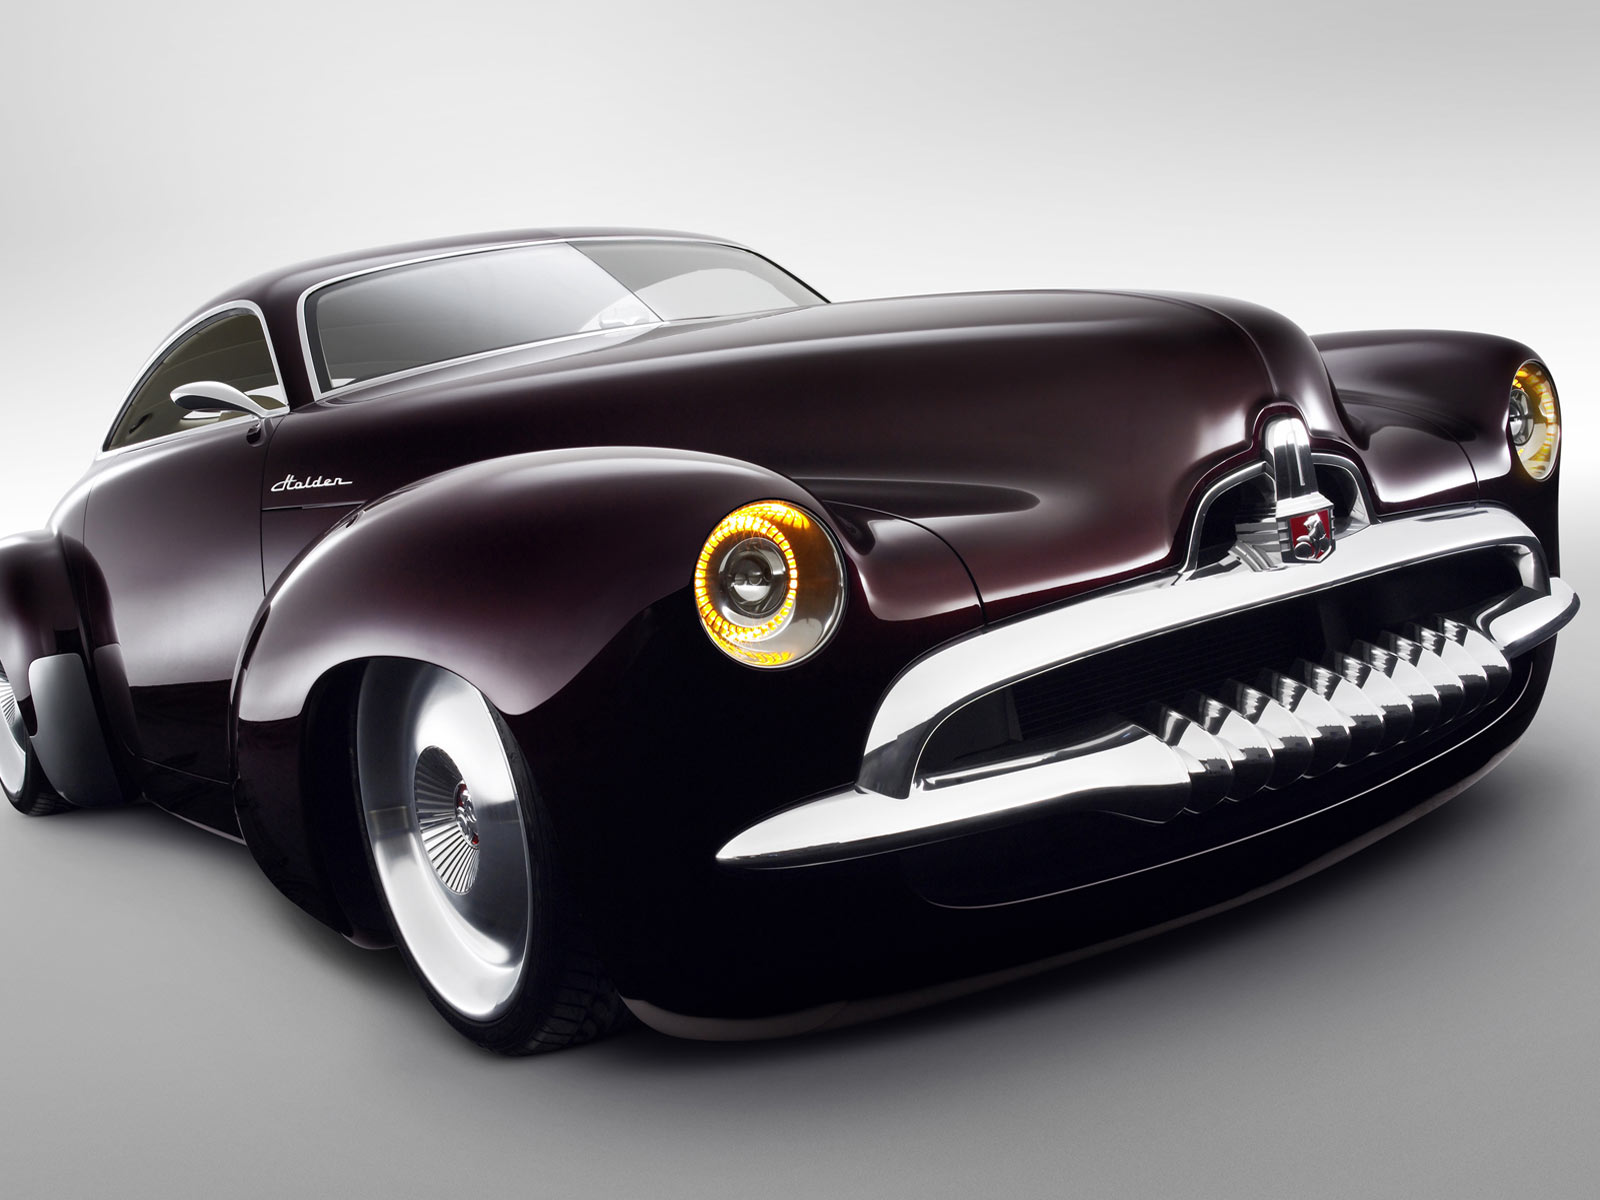 Cars Wallpaper Purple Old Car Free High Quality Background Pictures